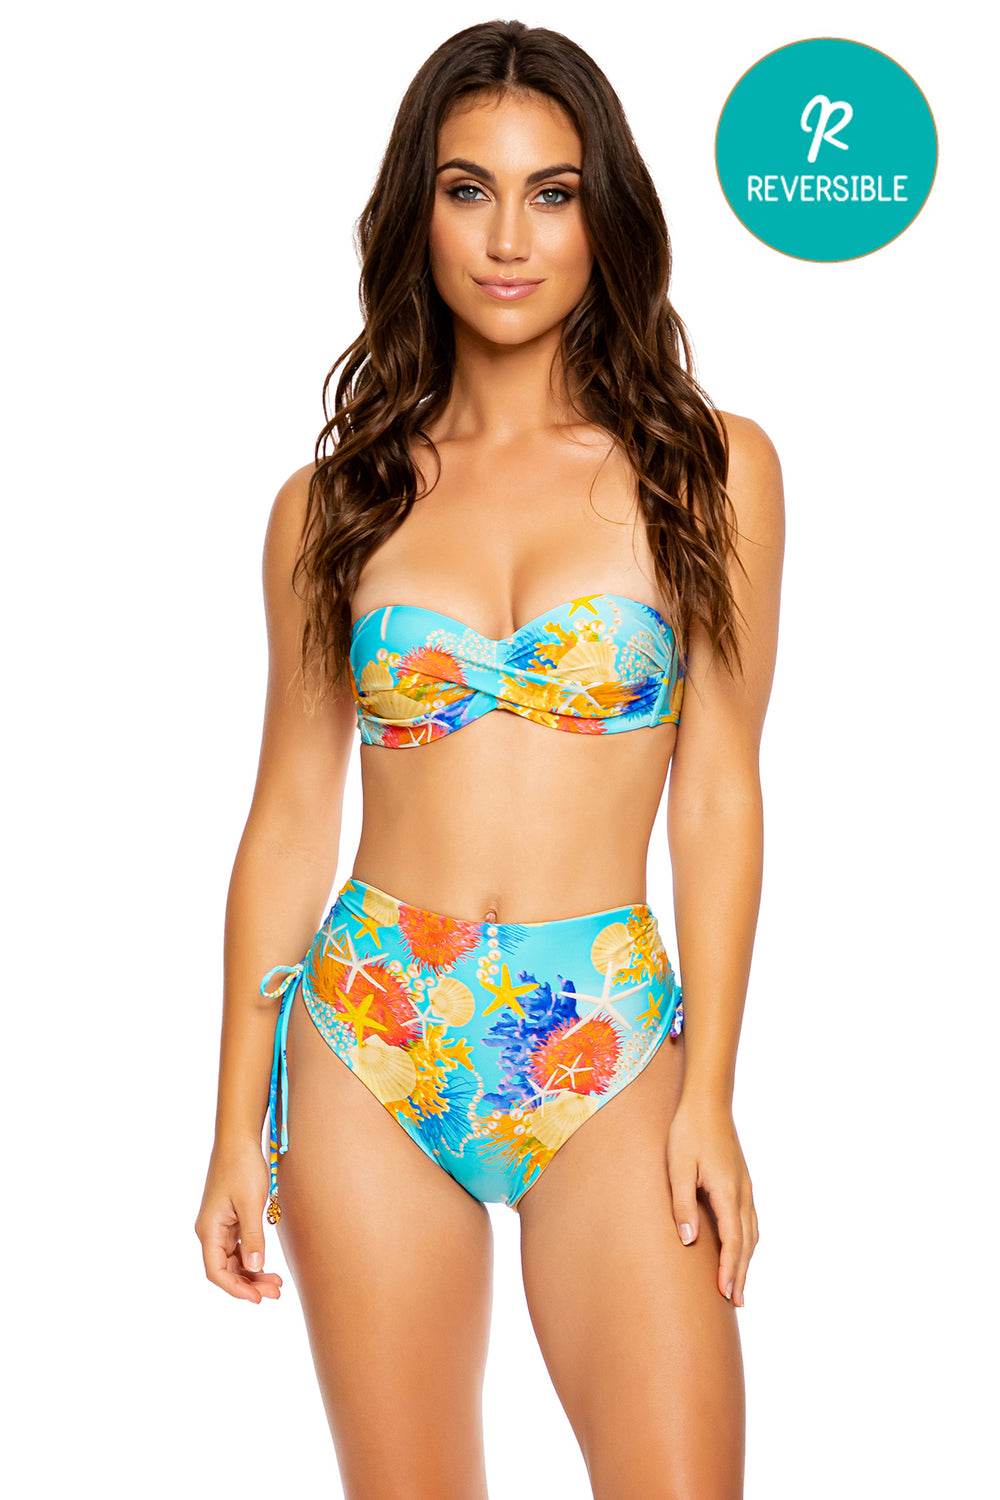 TWISTED MERMAID - Underwire Push Up Bandeau Top & High Waist Bottom • Multicolor